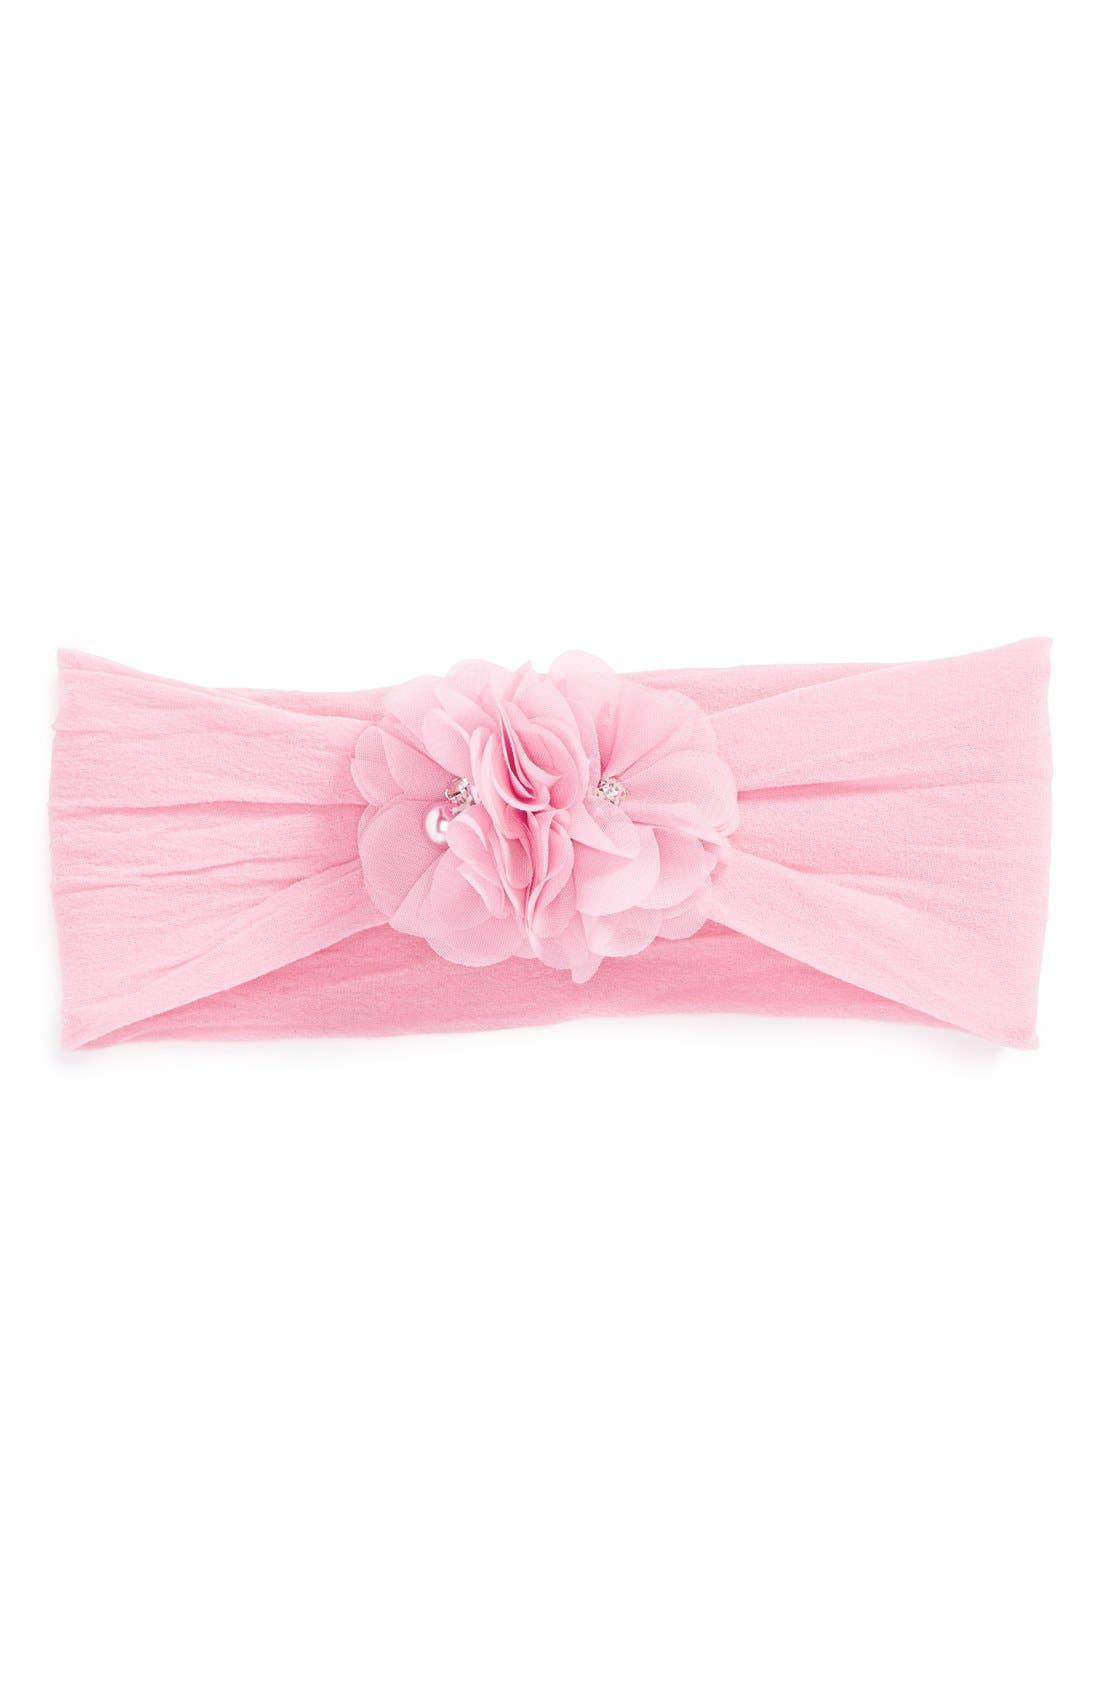 Alternate Image 1 Selected - Baby Bling Chiffon Bouquet Headband (Baby Girls)